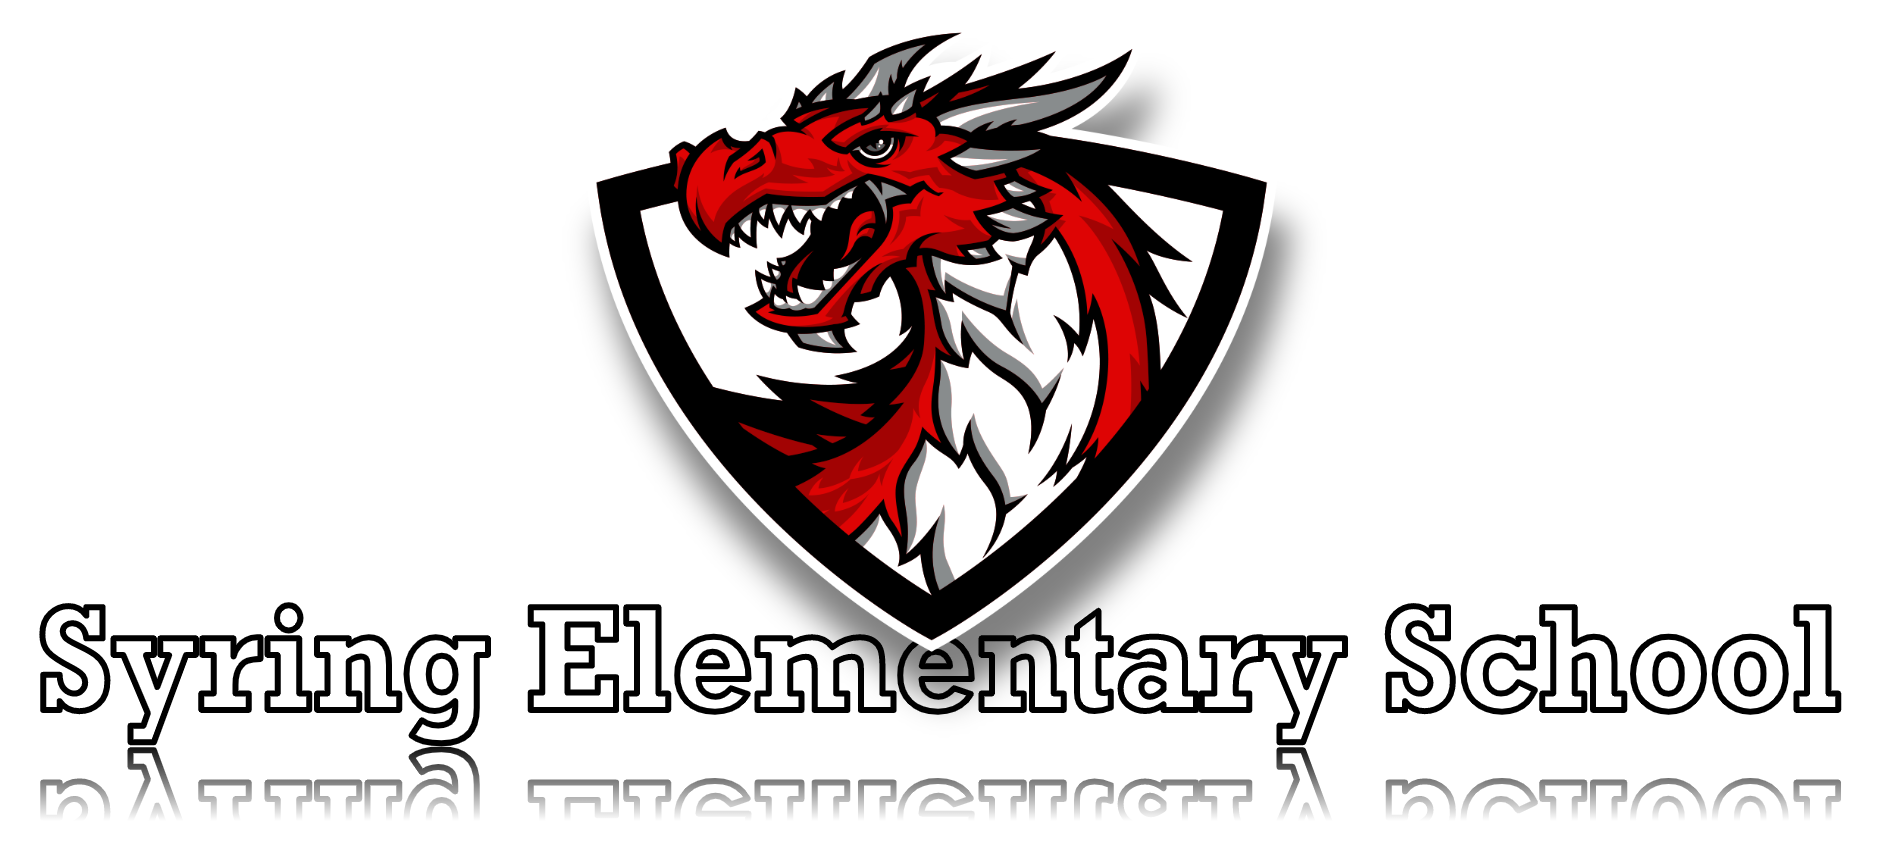 Dragon mascot with Syring Elementary School title